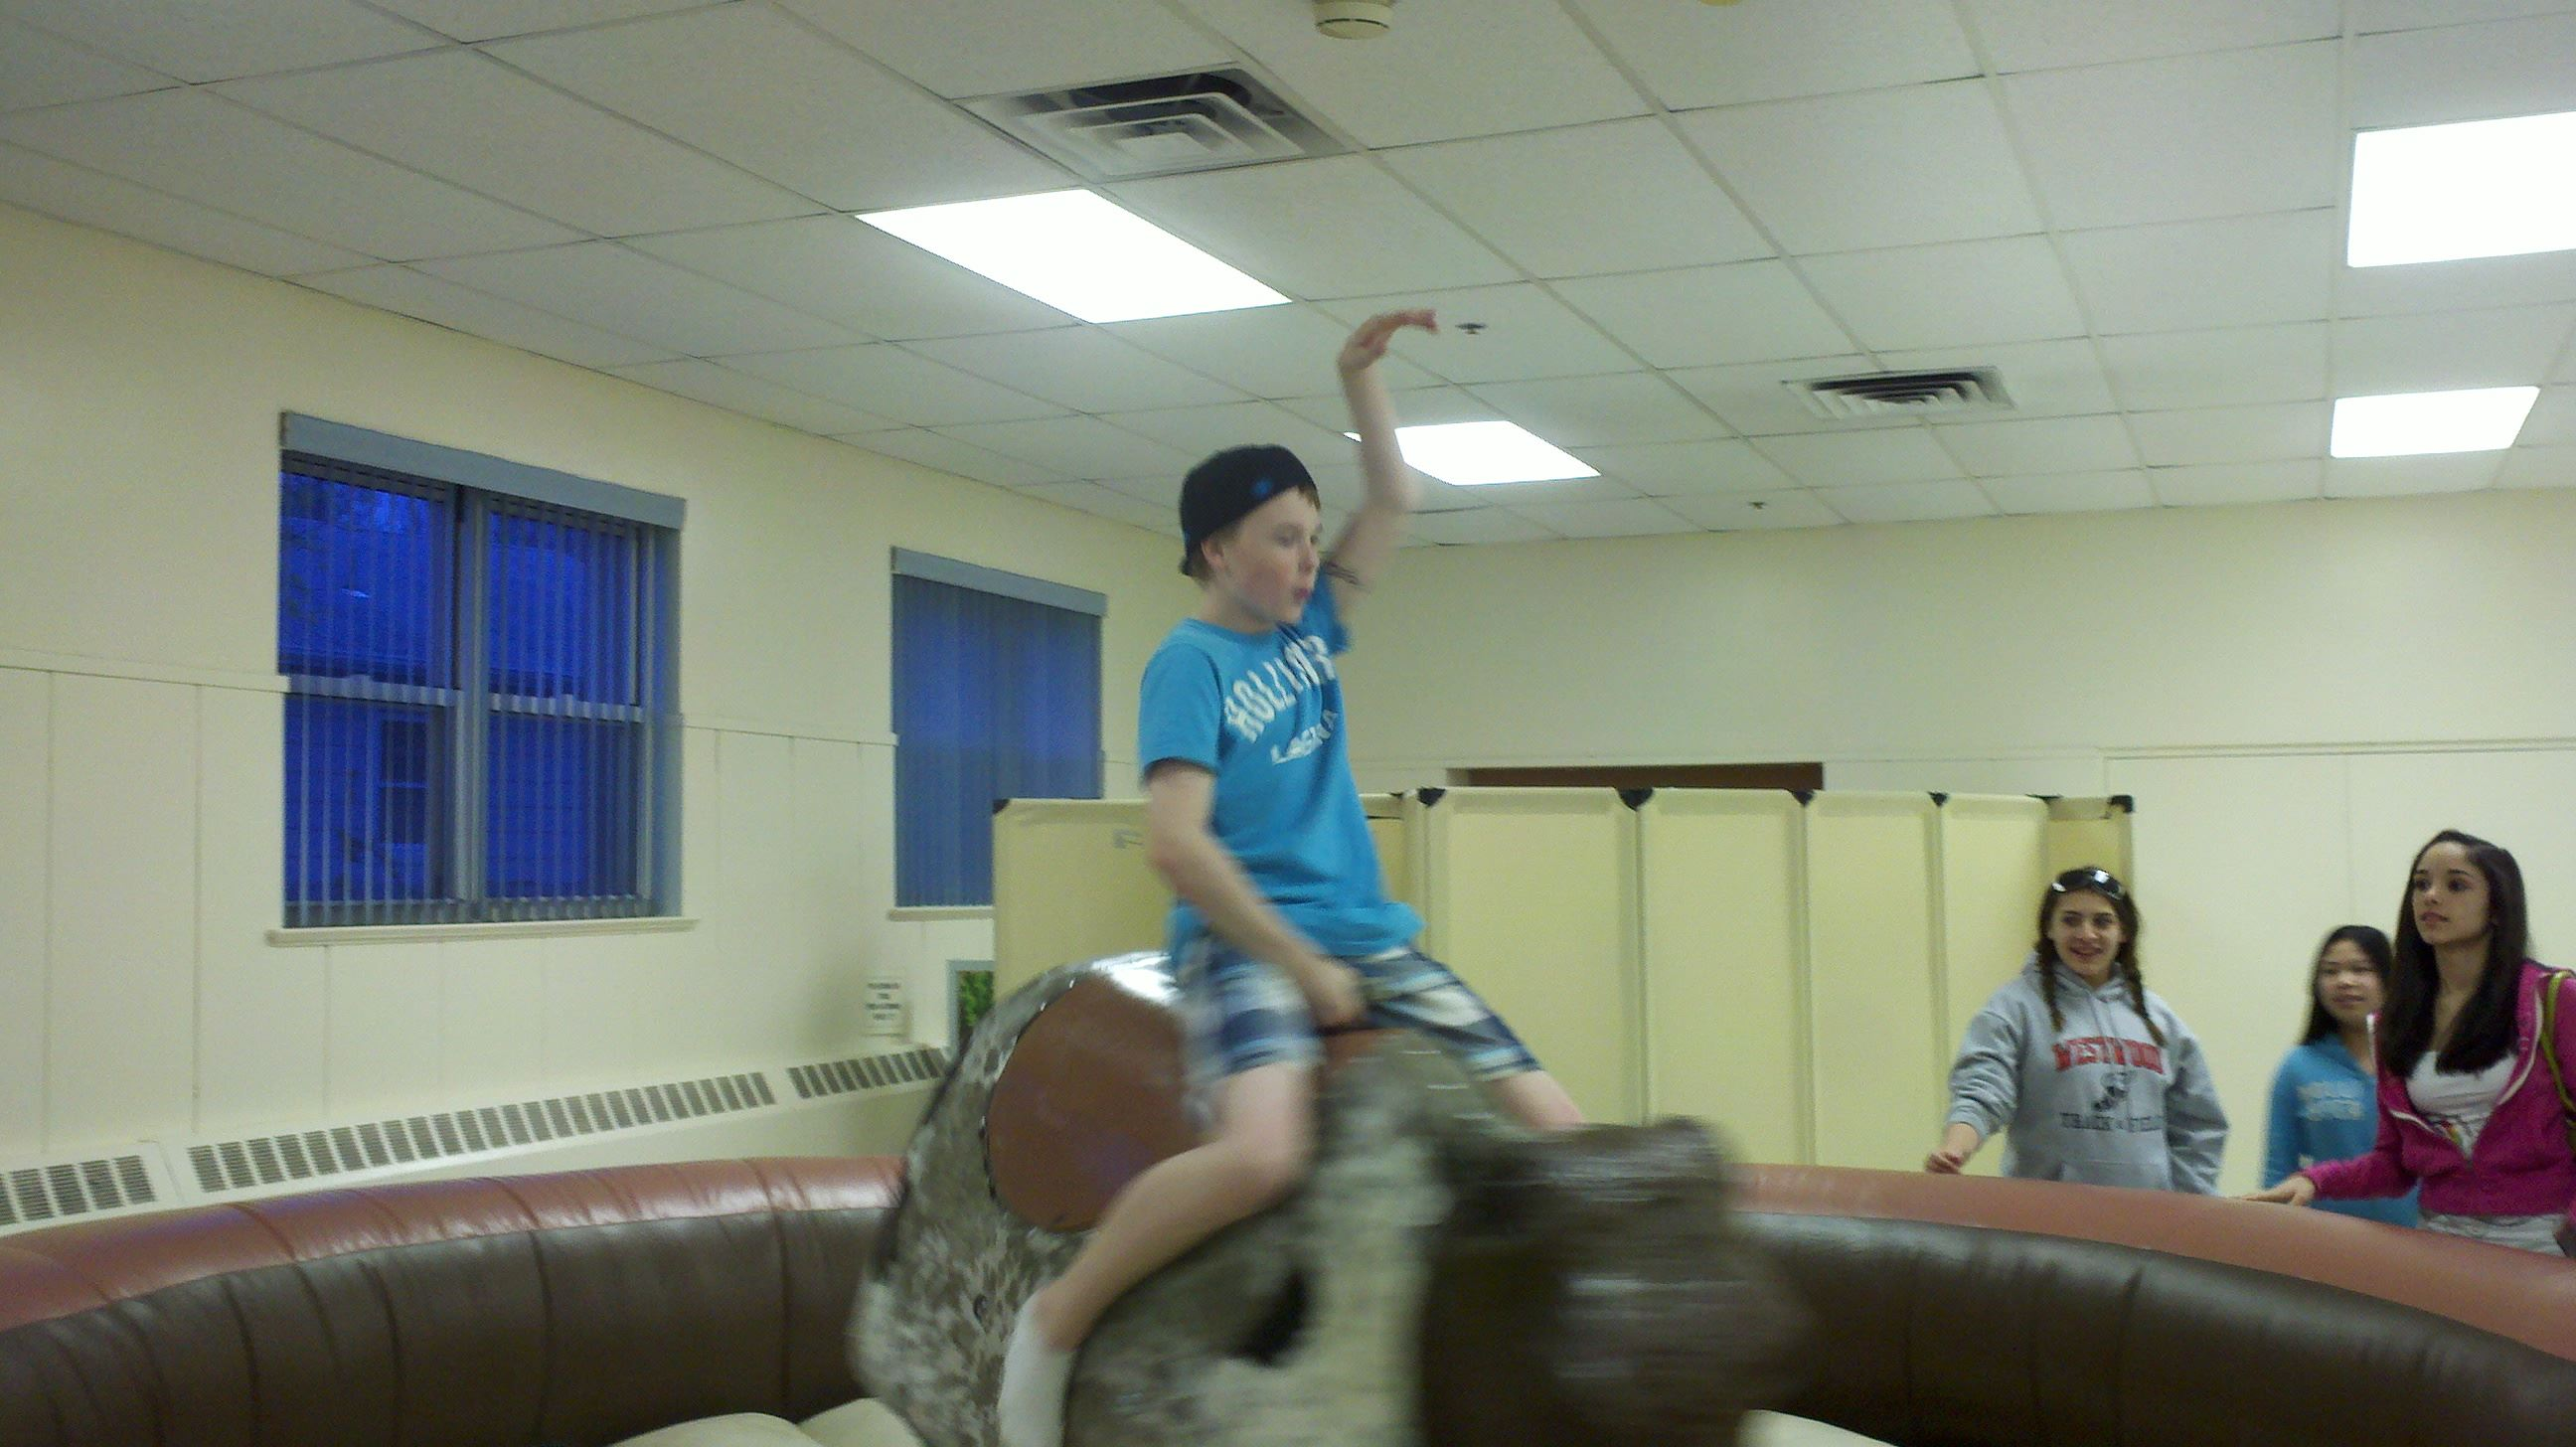 Teen Rides a Mechanical Bull